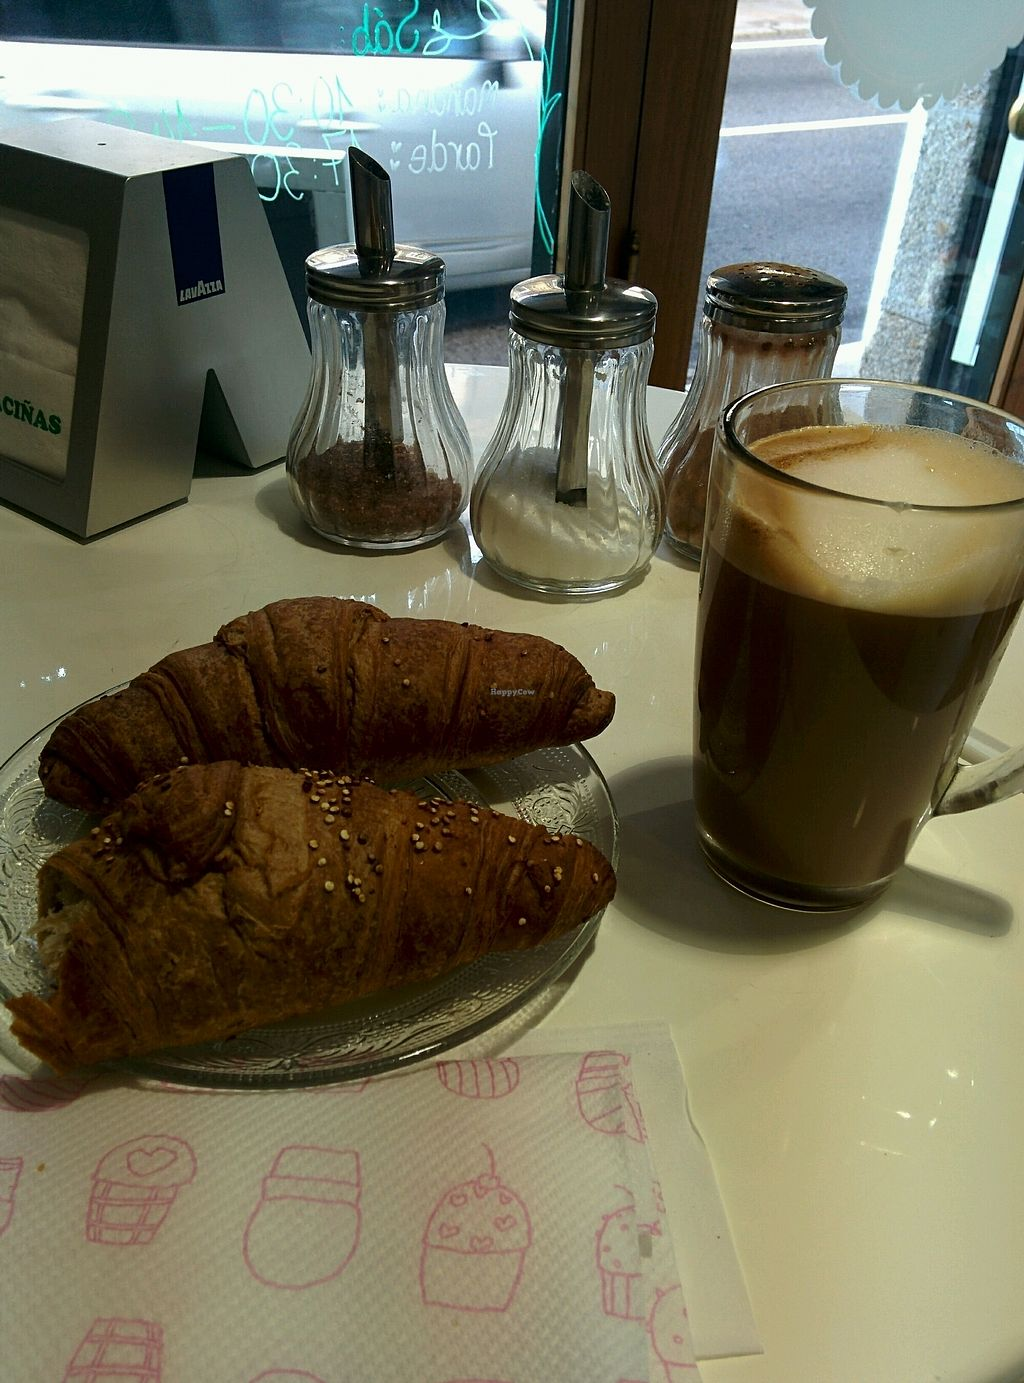 """Photo of Alice in Wonder Pie  by <a href=""""/members/profile/ninjagirl"""">ninjagirl</a> <br/>Vegan croissant&oat latte <br/> September 20, 2017  - <a href='/contact/abuse/image/89279/306356'>Report</a>"""